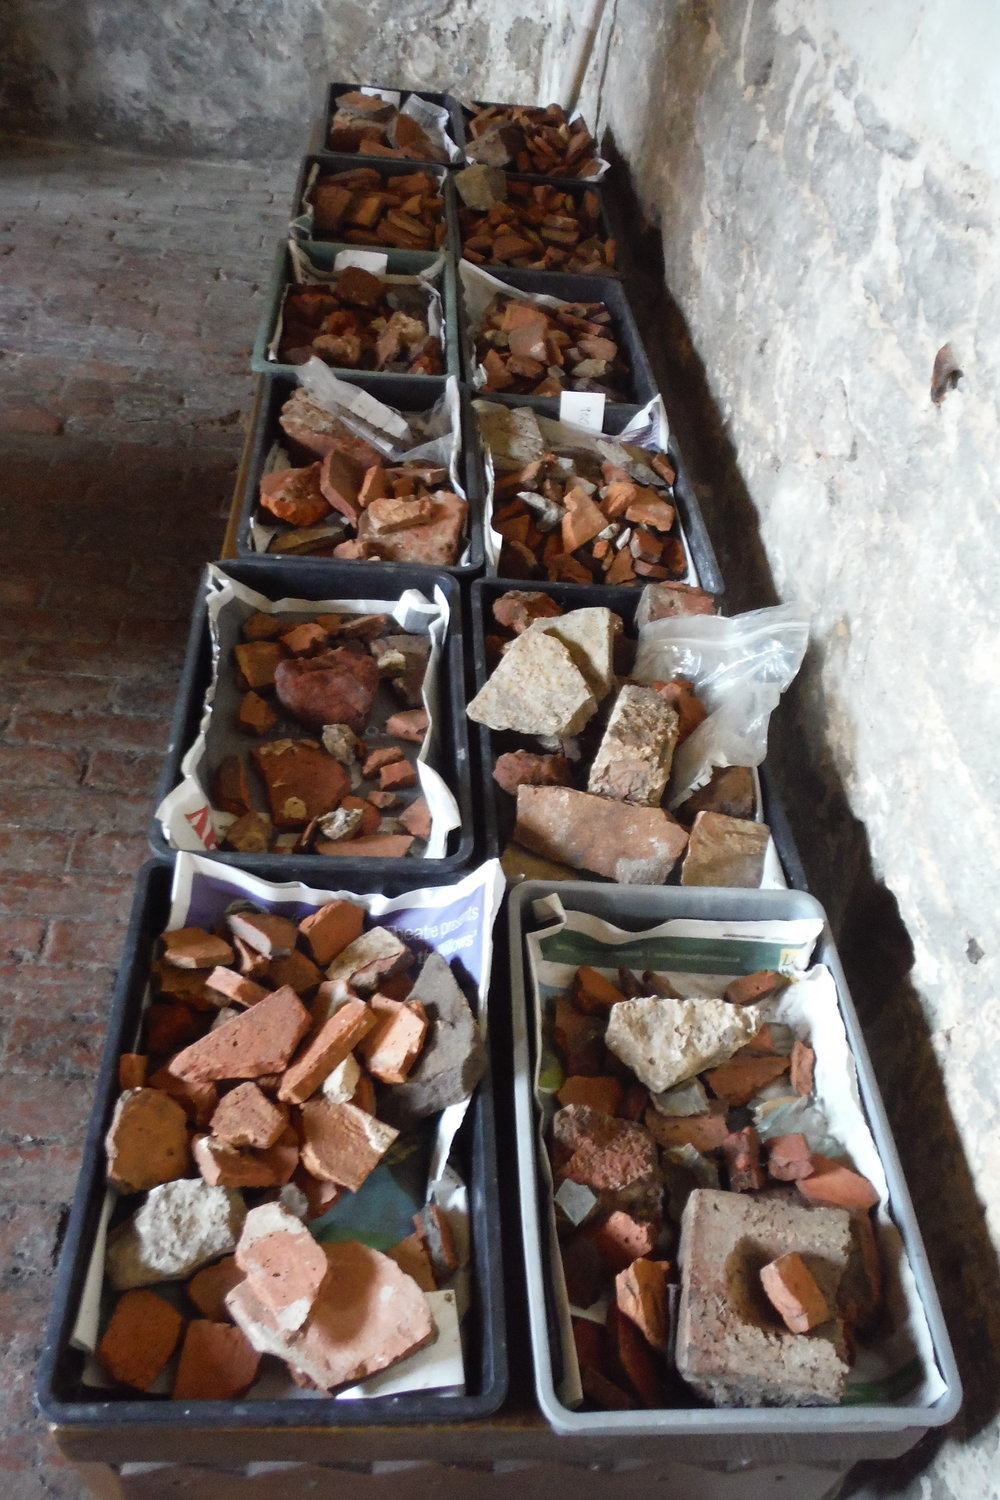 Finds from the Excavations at Willington